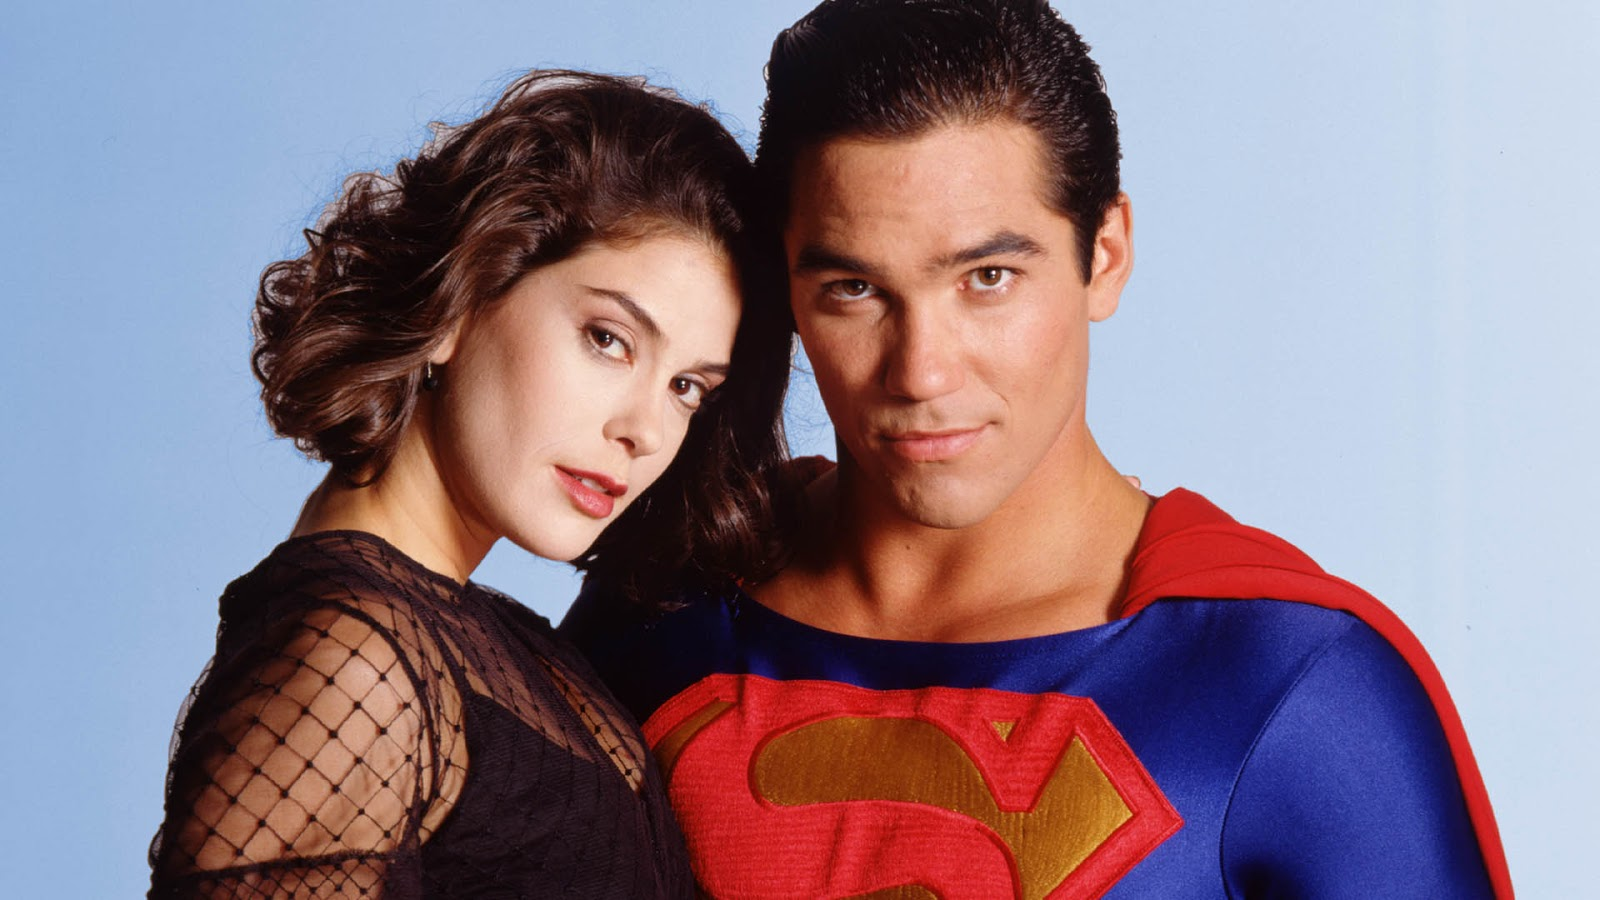 Teri Hatcher Joins The Cast Of Supergirl.